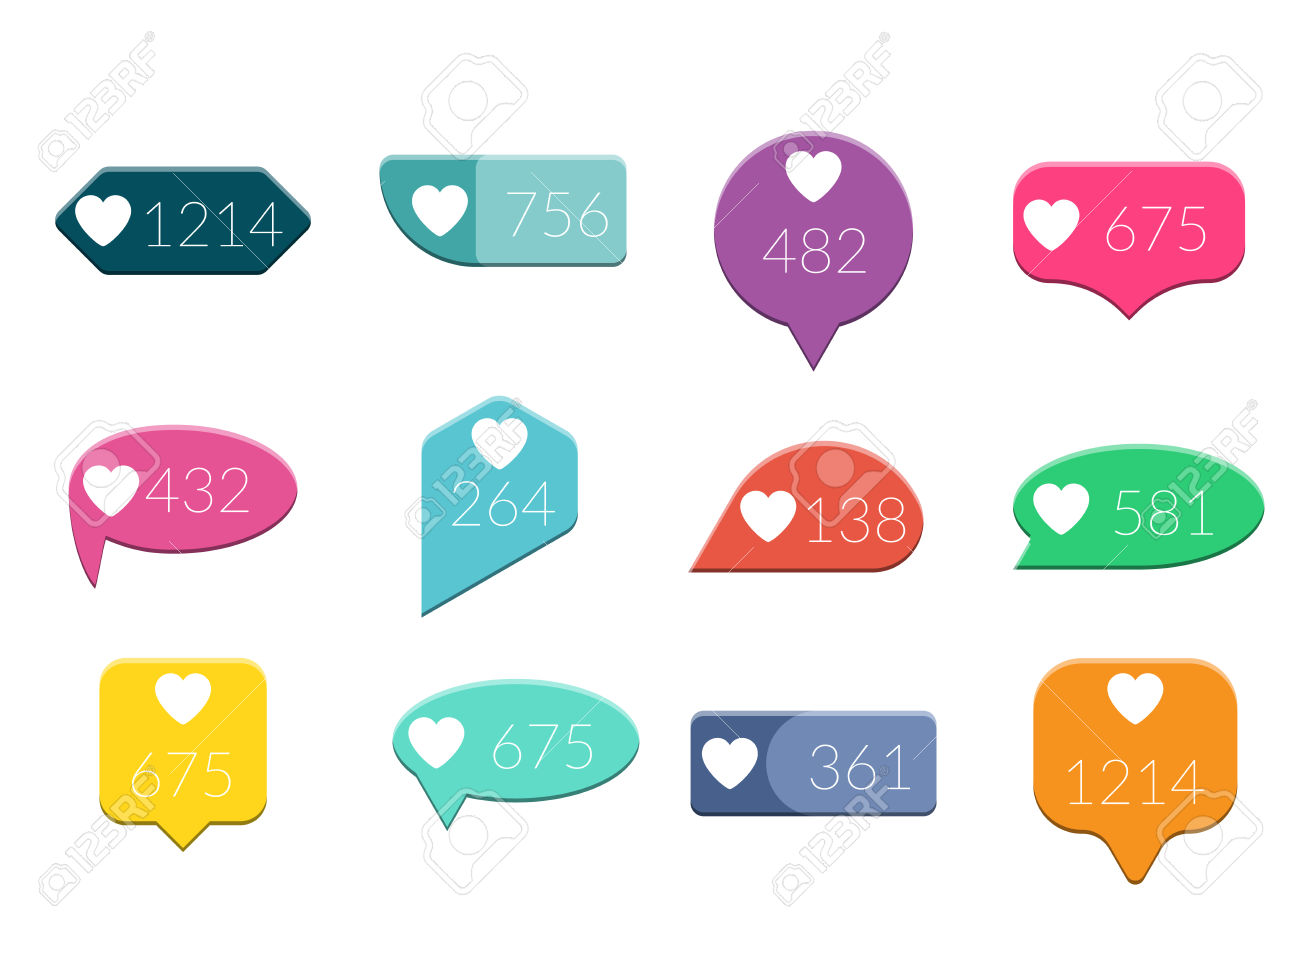 237 Like Instagram Stock Vector Illustration And Royalty Free Like.